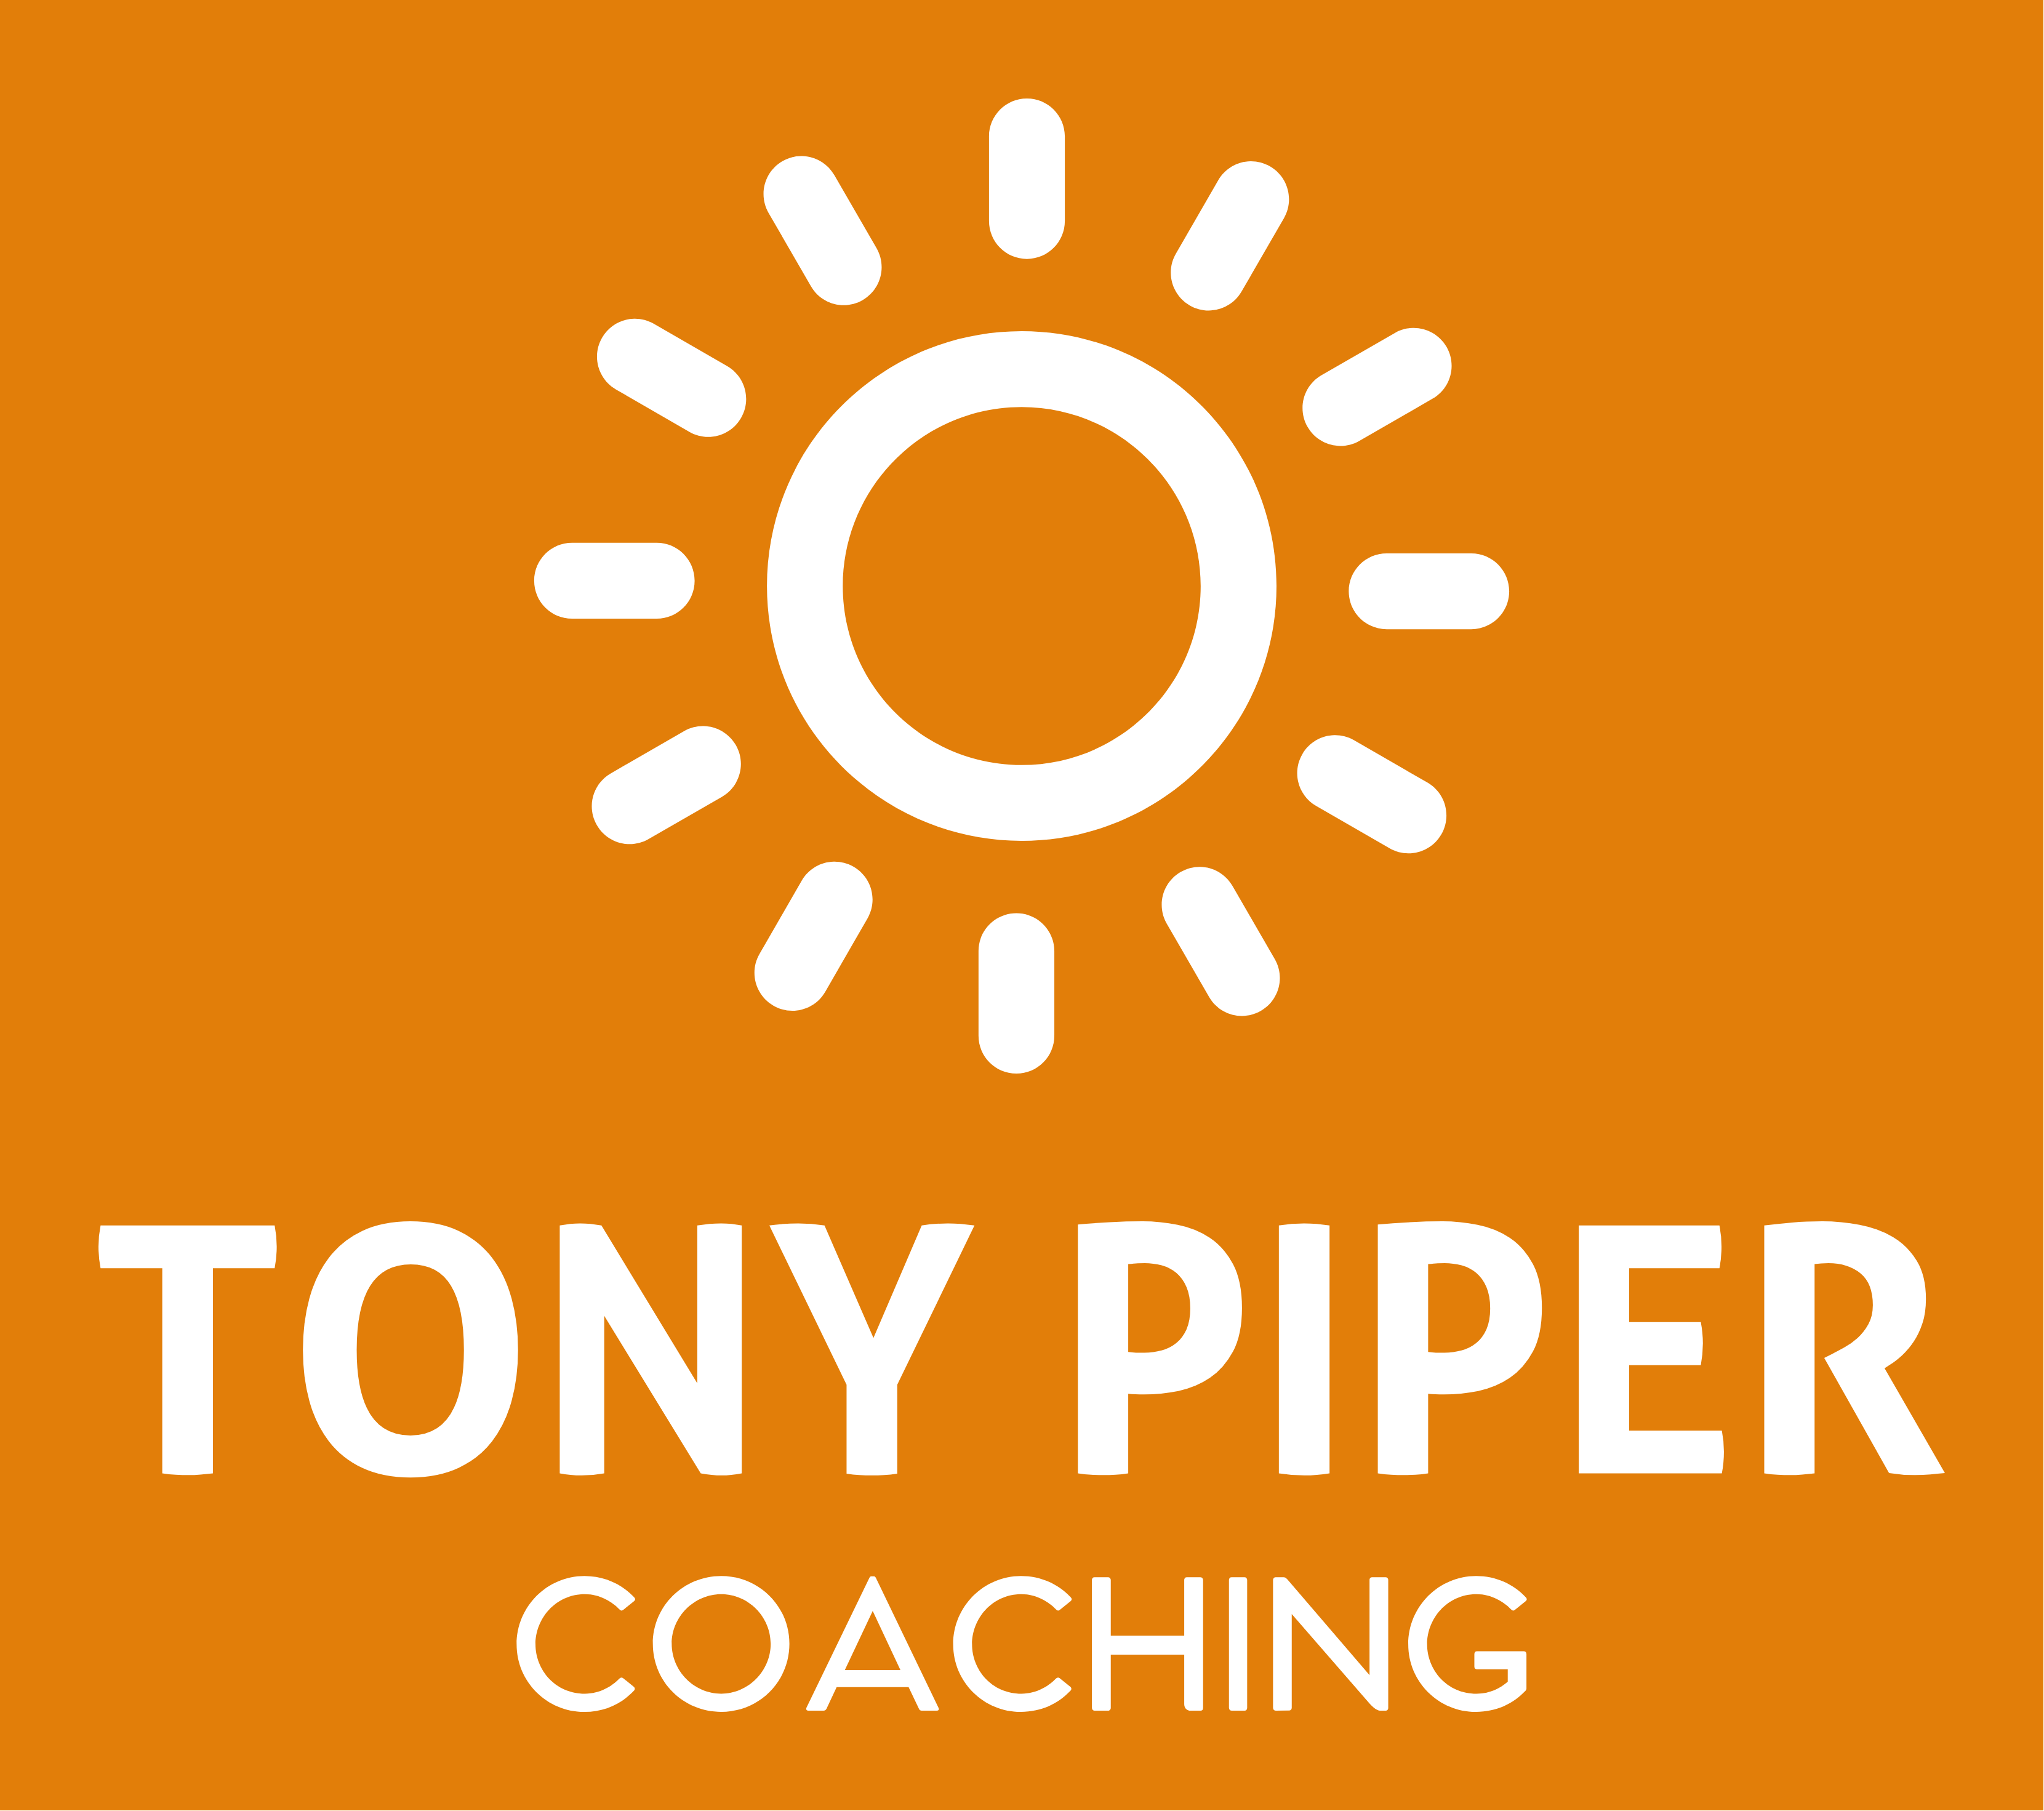 Tony Piper Coaching